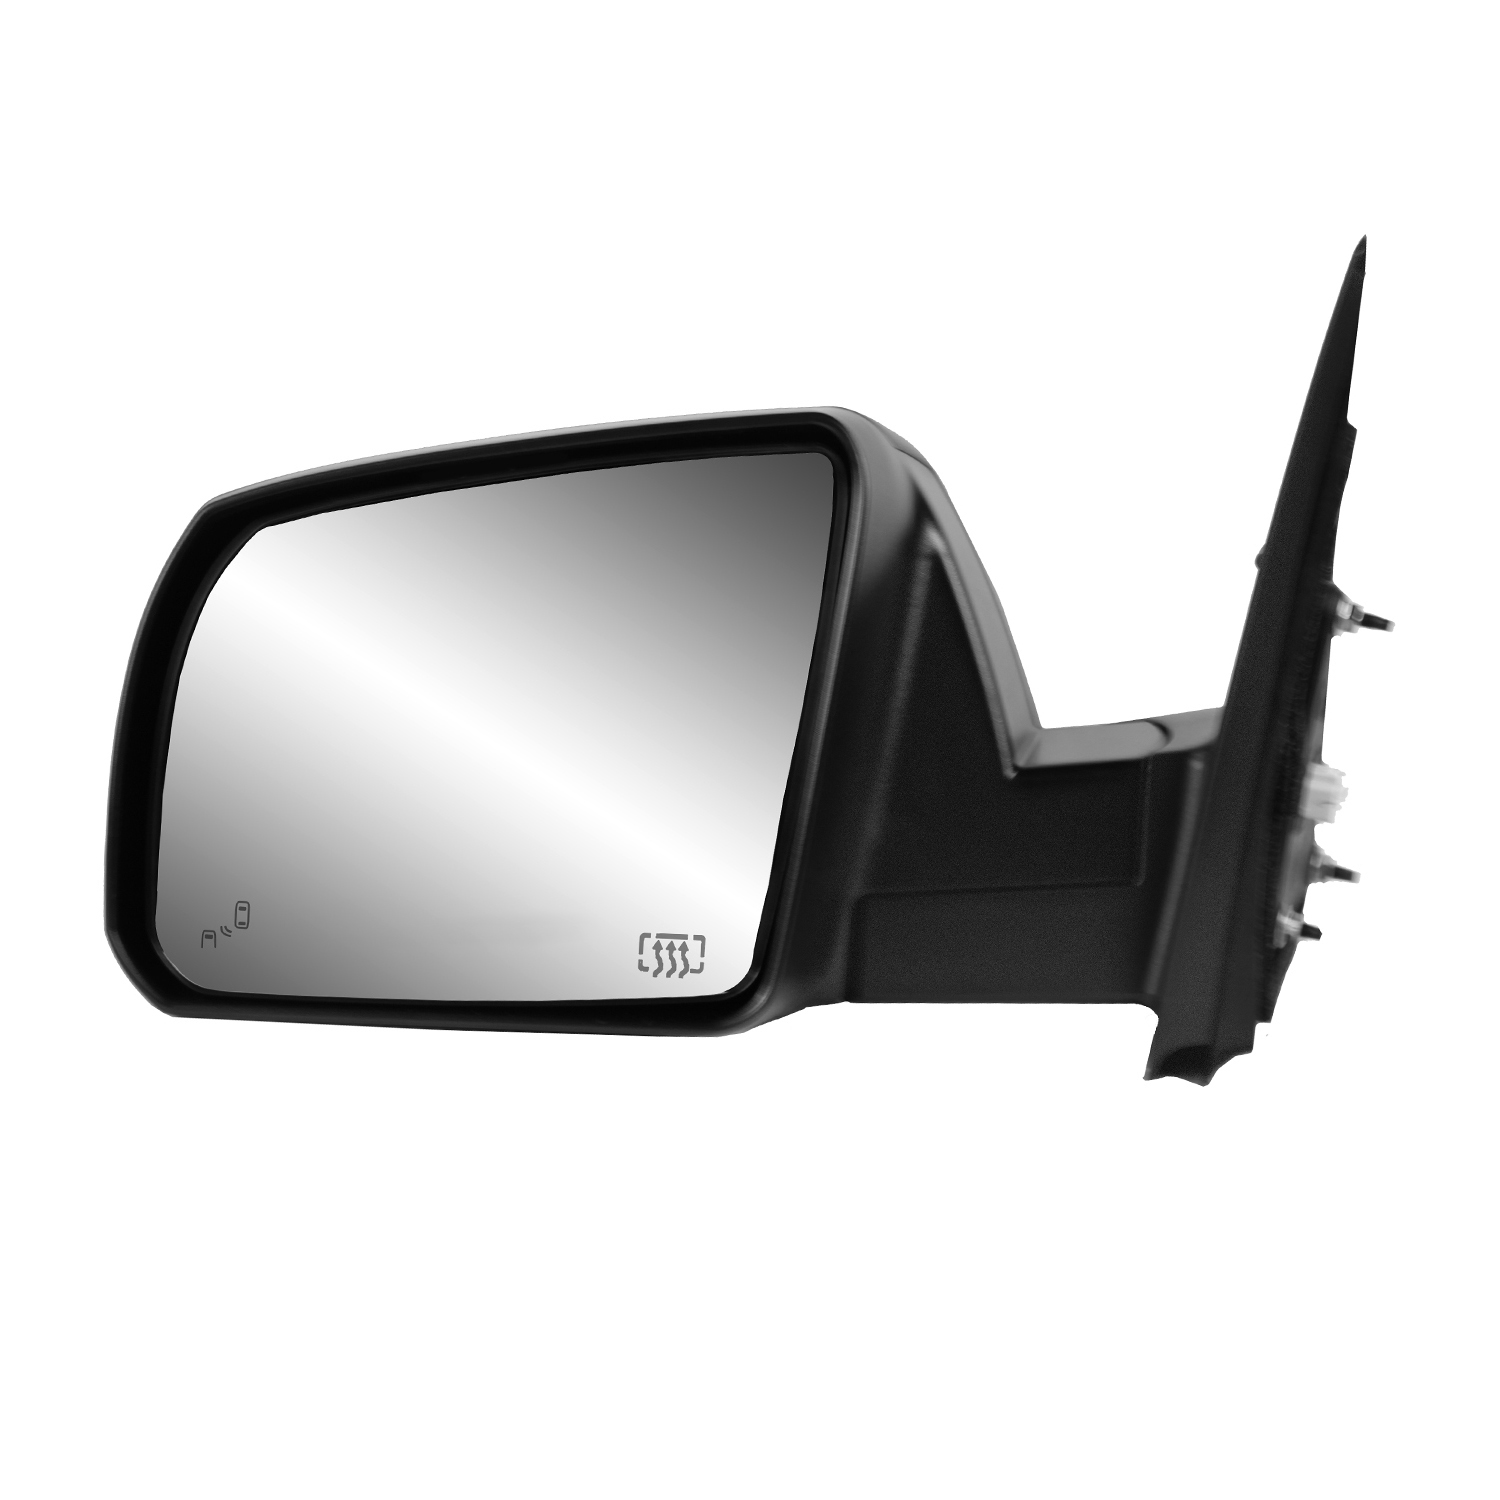 Manual Black Fit System Passenger Side Mirror for Toyota Tundra Pick-Up Foldaway